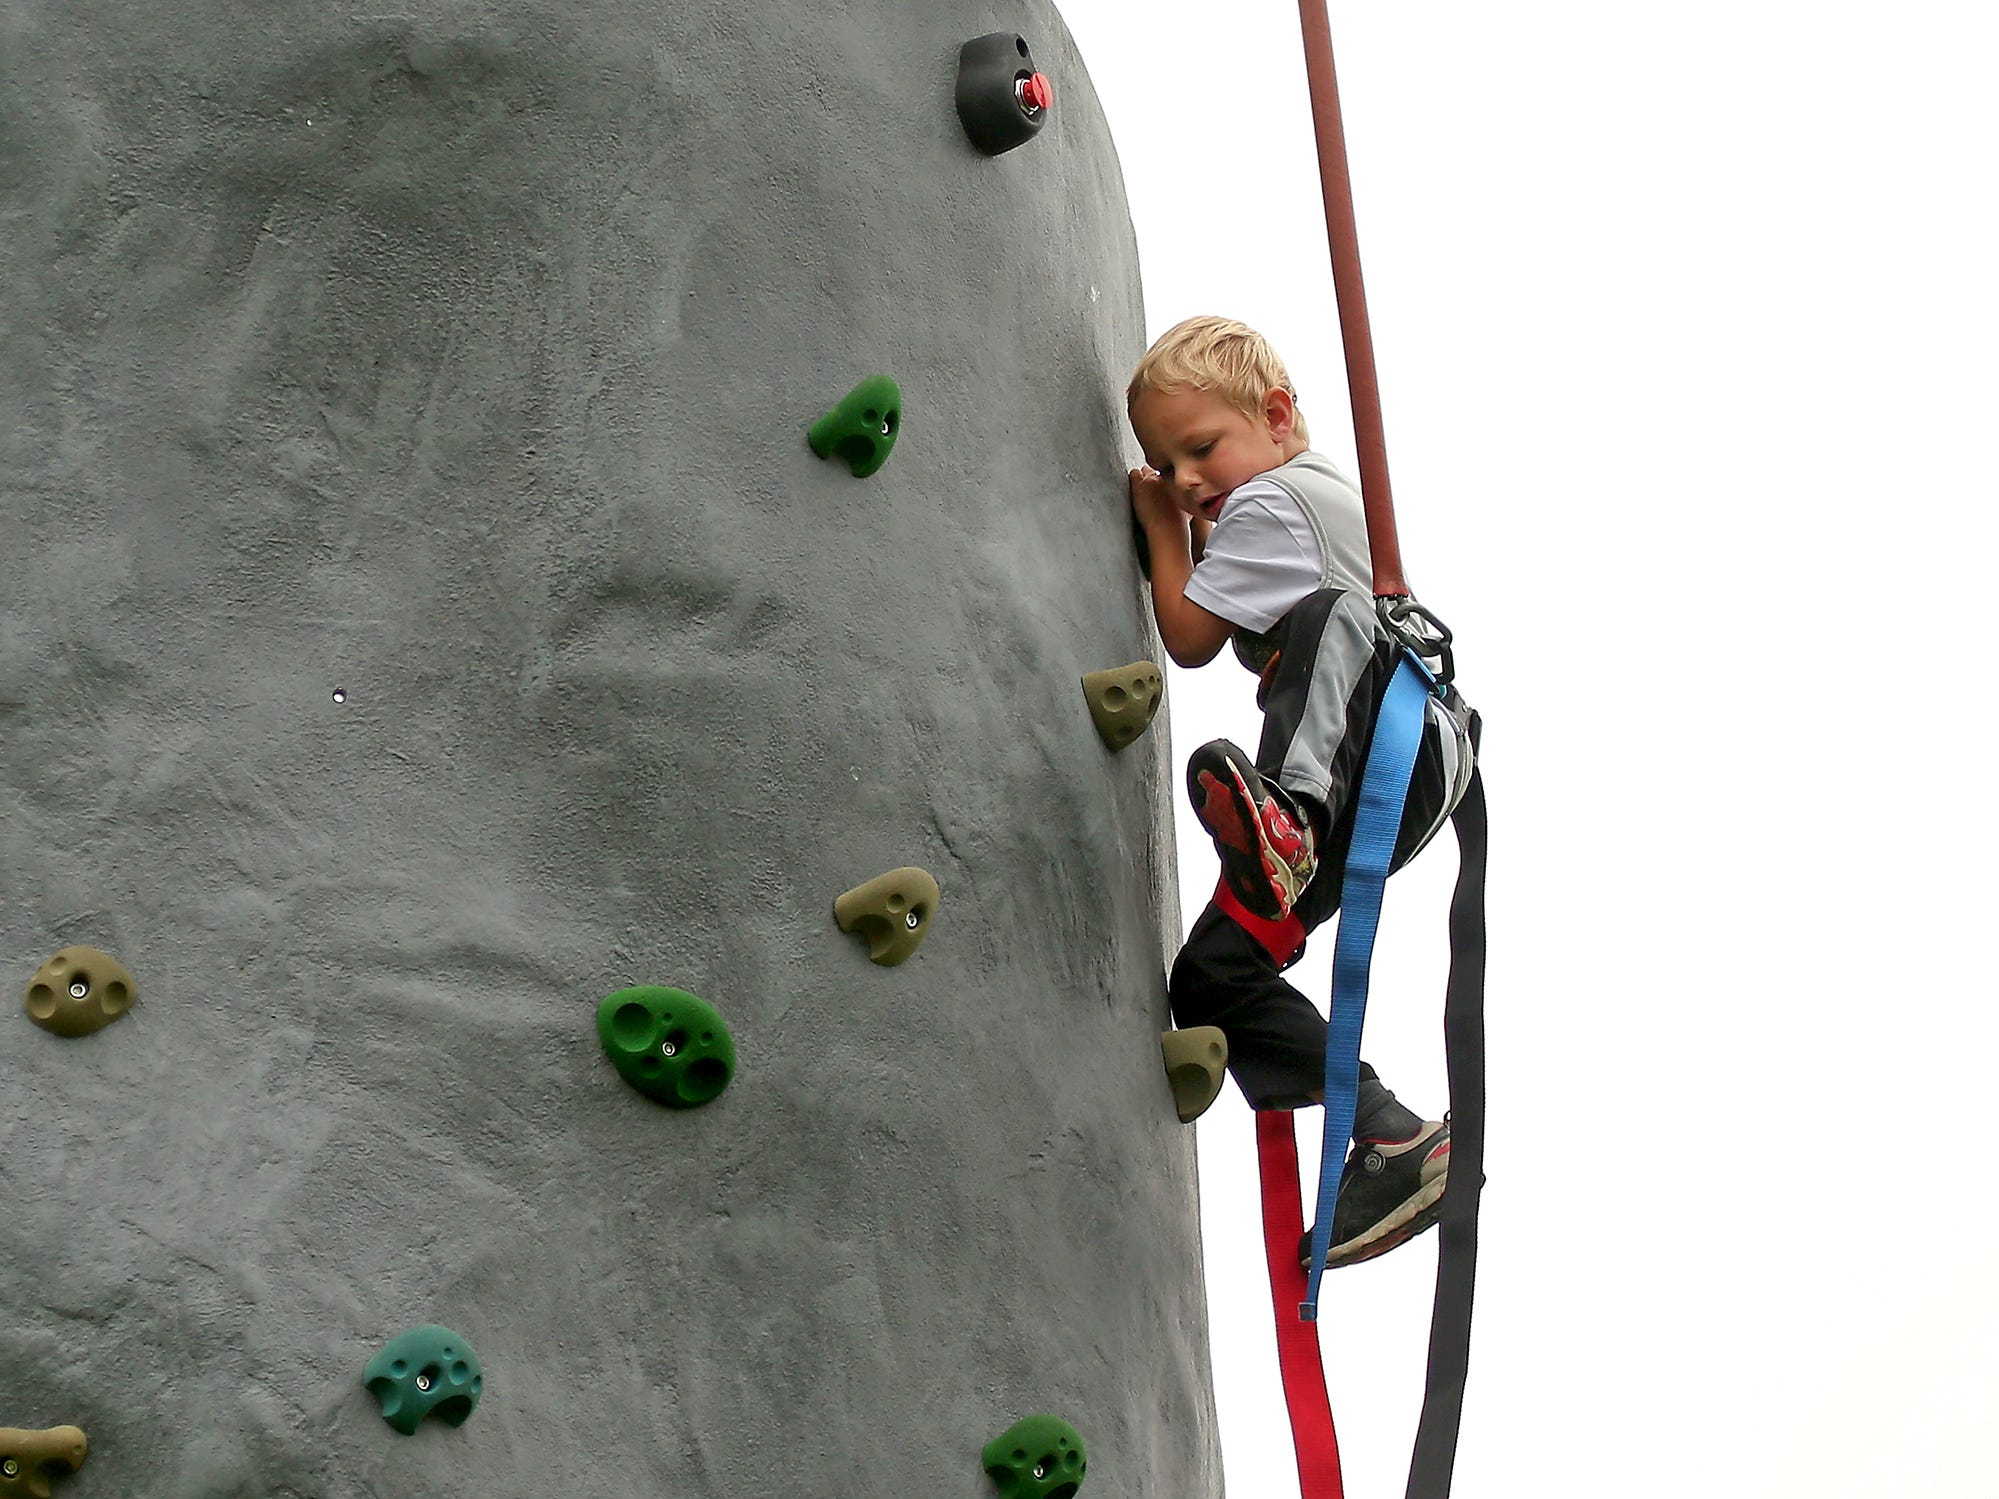 """Hudson Warner, 4, lifts his foot to a higher foothold as he heads to the top of the National Guard's climbing wall at Bremerton's Kiwanis Park on Wednesday, July 18, 2018. The wall will be at Kiwanis Park Friday, July 20Tuesday, July 24 and Wednesday, July 25 as part of Bremerton Parks and Recreation's """"Fun at the Playgrounds"""" program."""